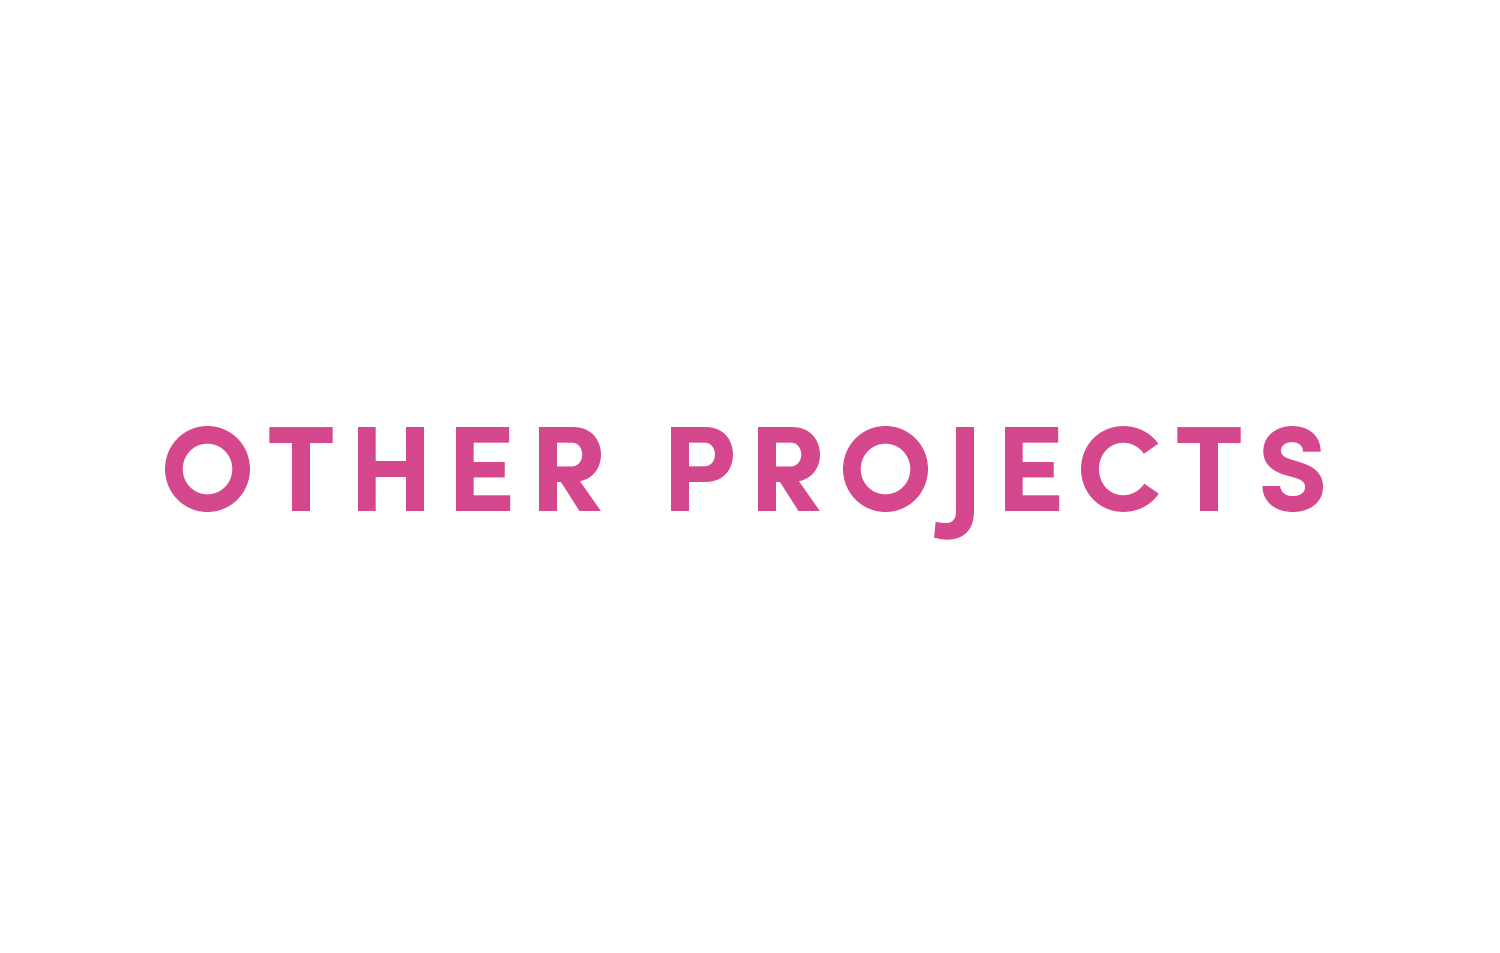 Other-Projects-Button-2.jpg